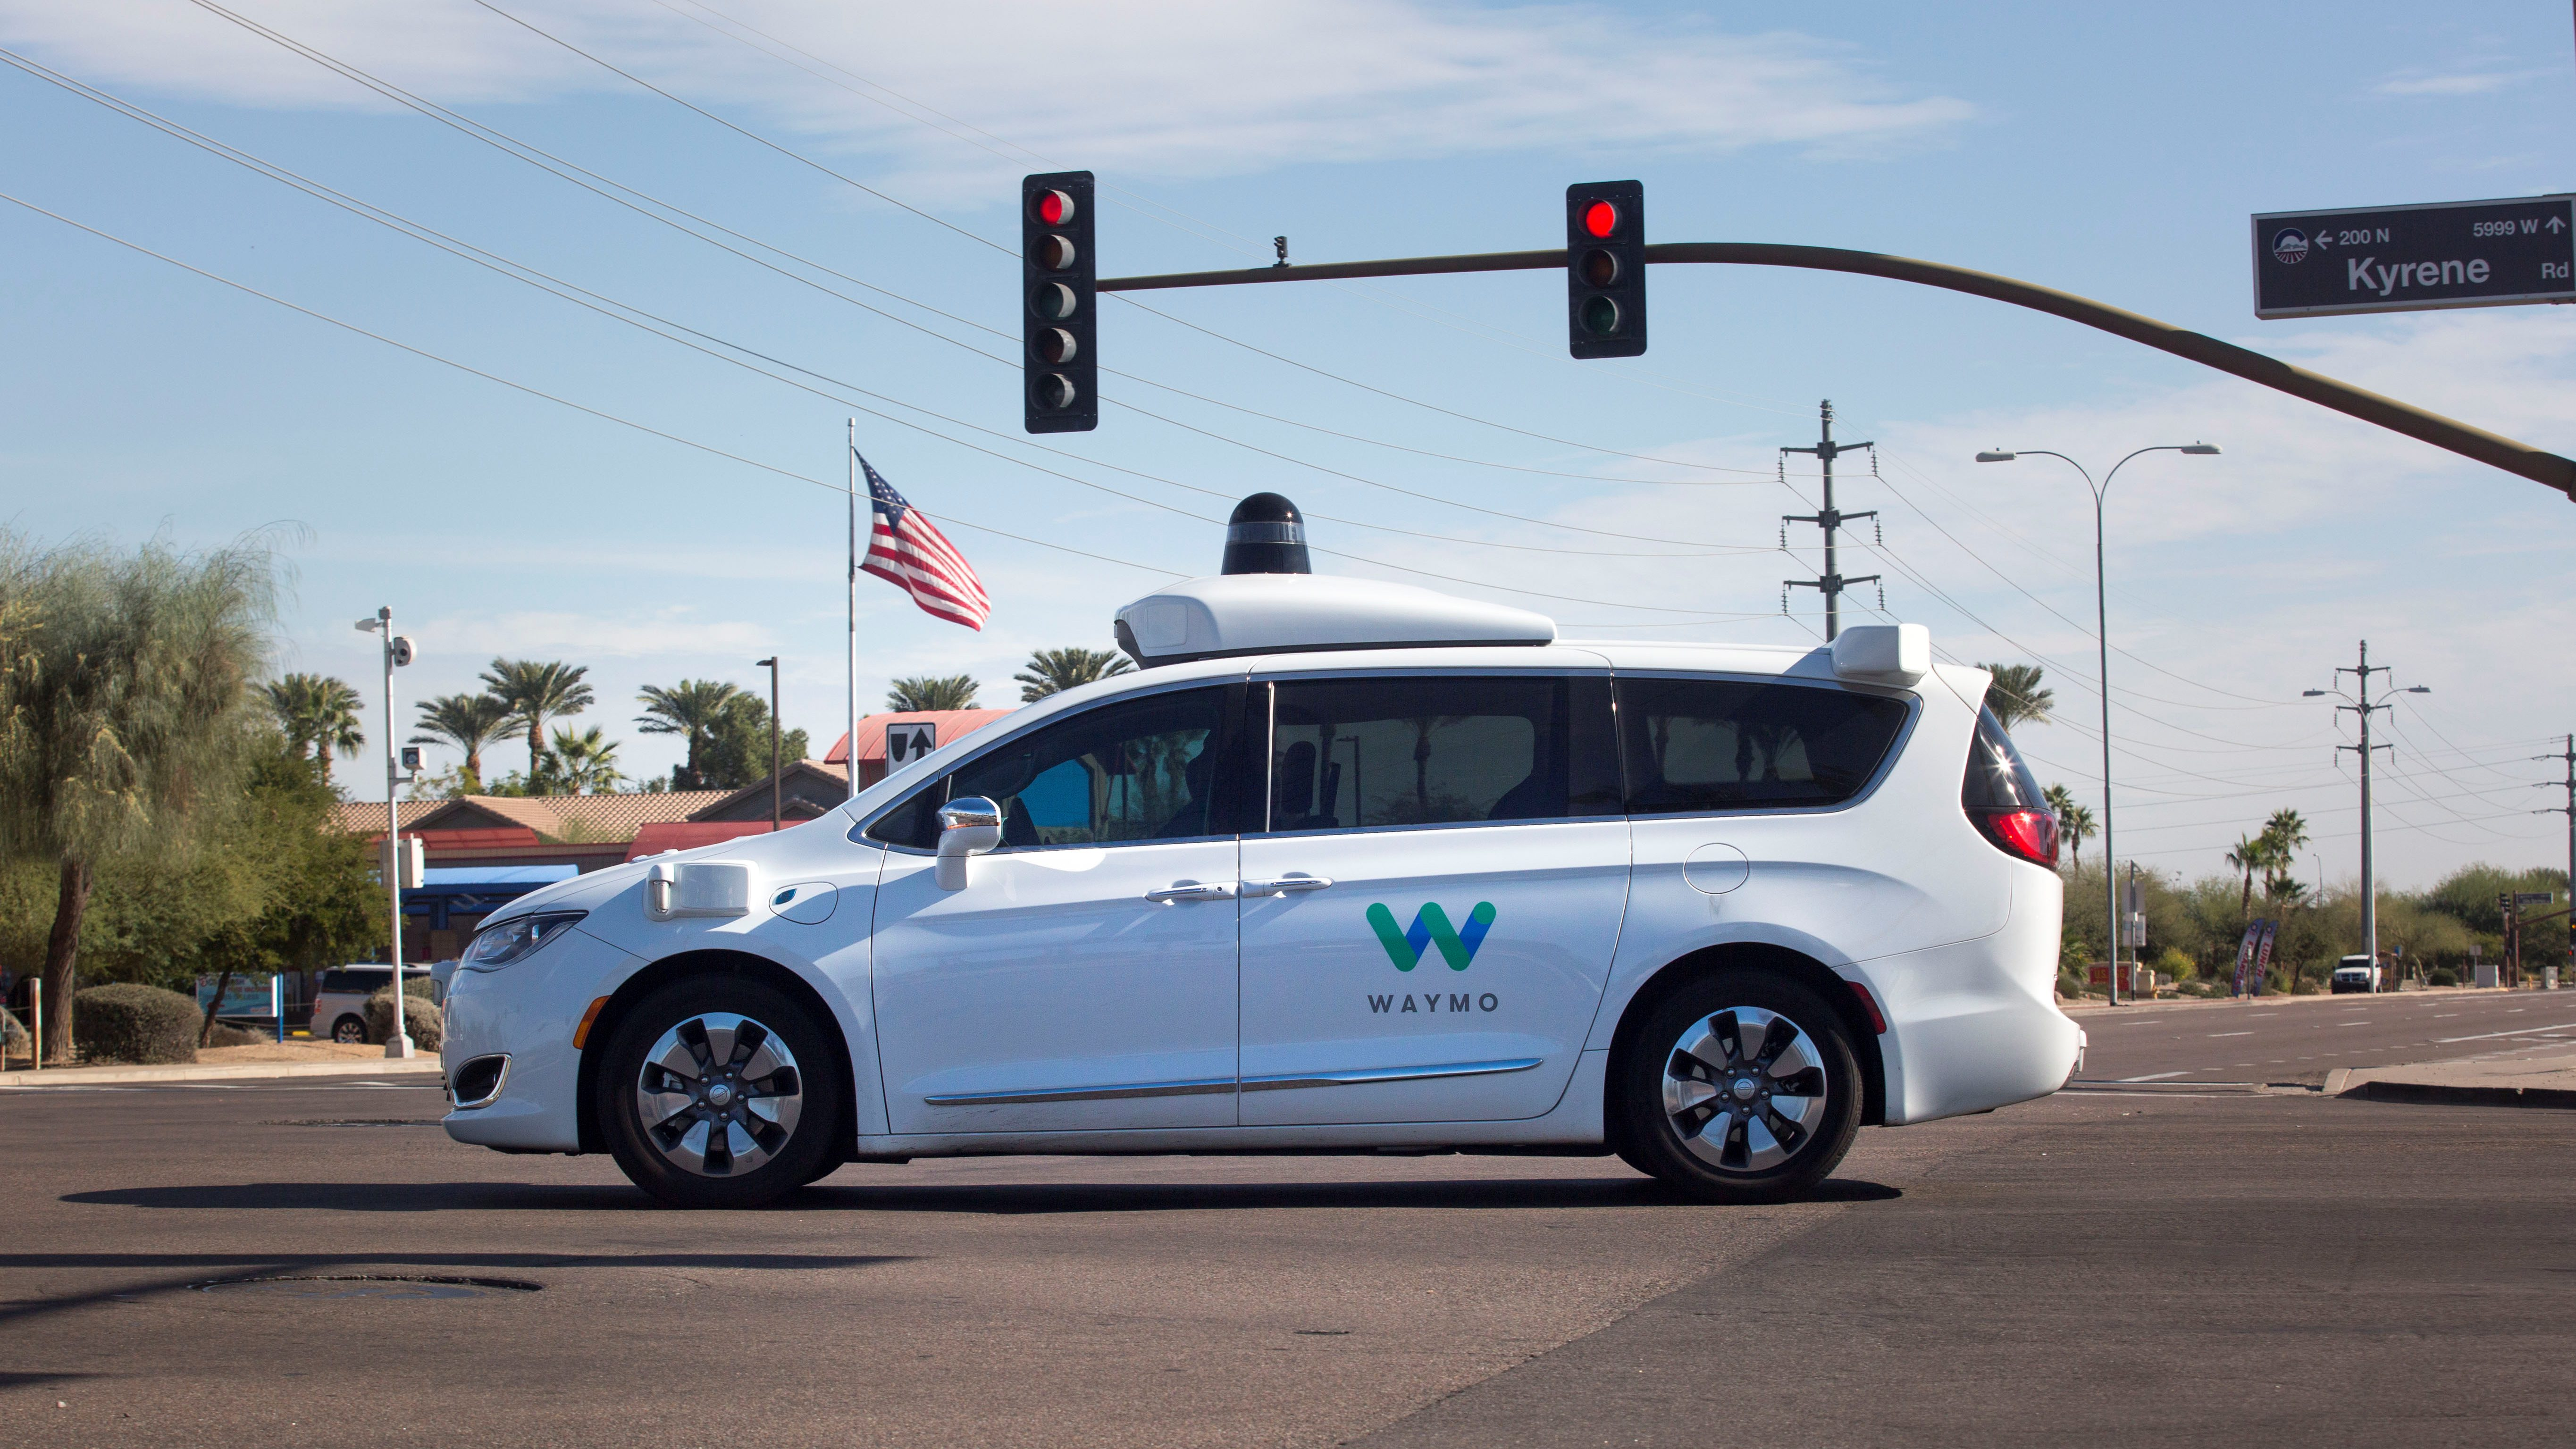 A Waymo self-driving vehicle moves through an intersection in Chandler Arizona